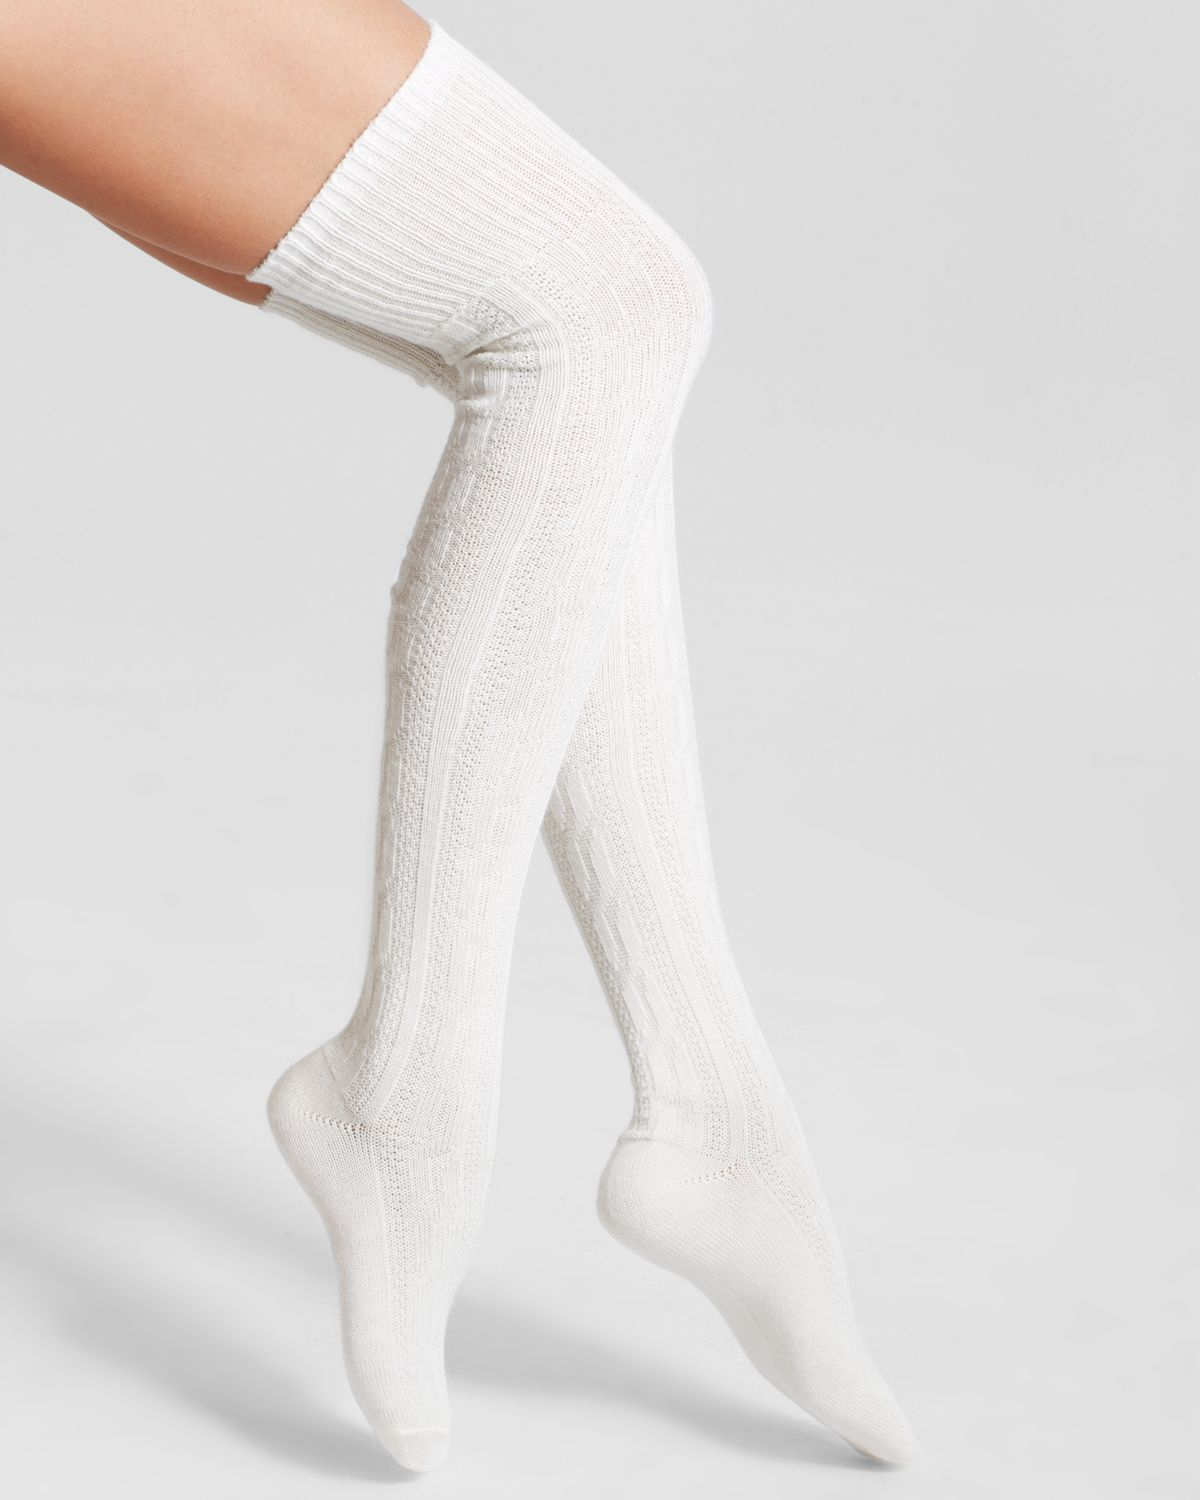 Shop for knee high white socks online at Target. Free shipping on purchases over $35 and save 5% every day with your Target REDcard.